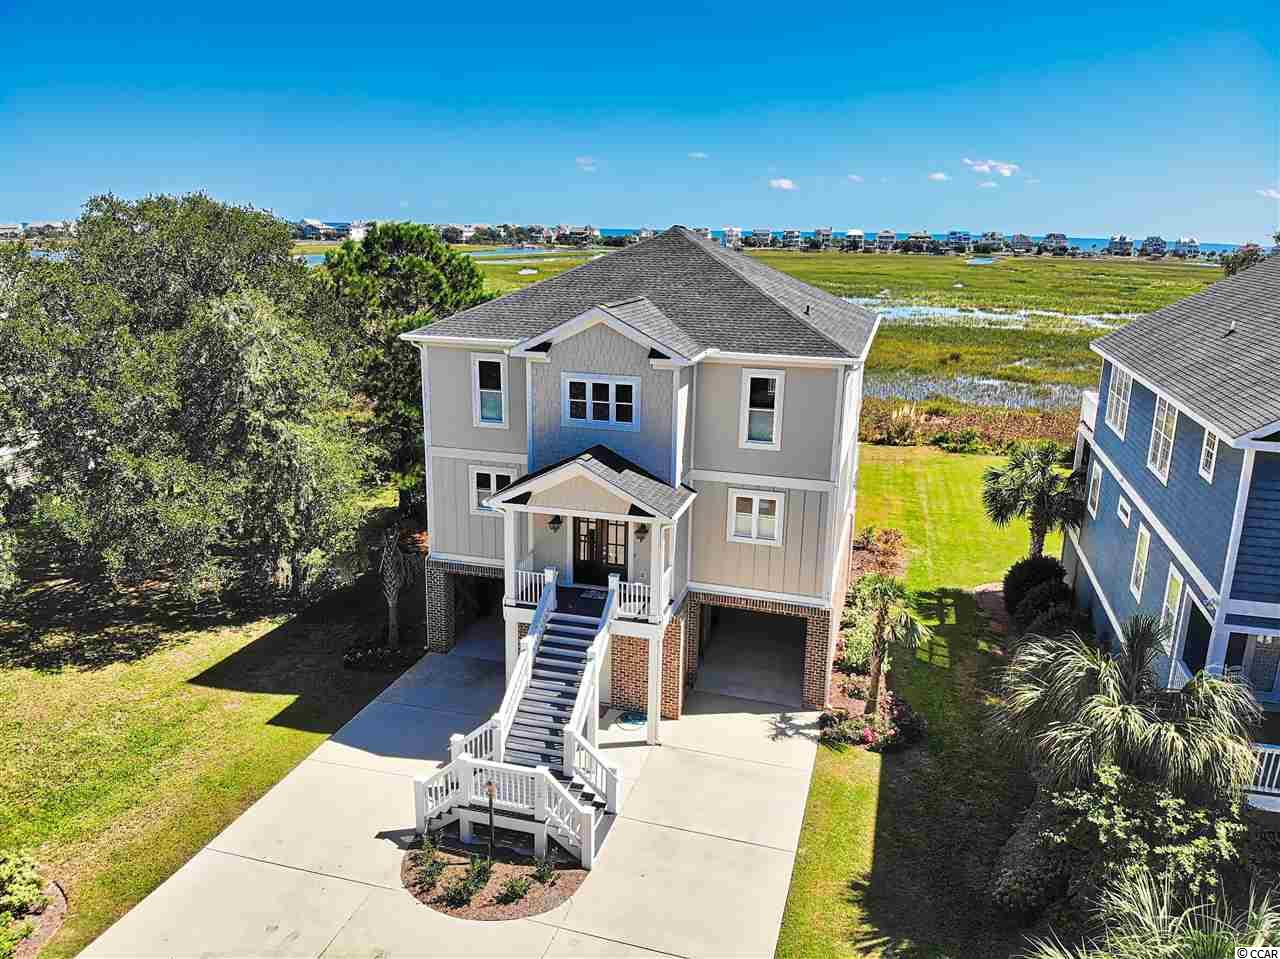 One of Pawleys Island 4 Bedroom Homes for Sale at 122 Windy Ln.